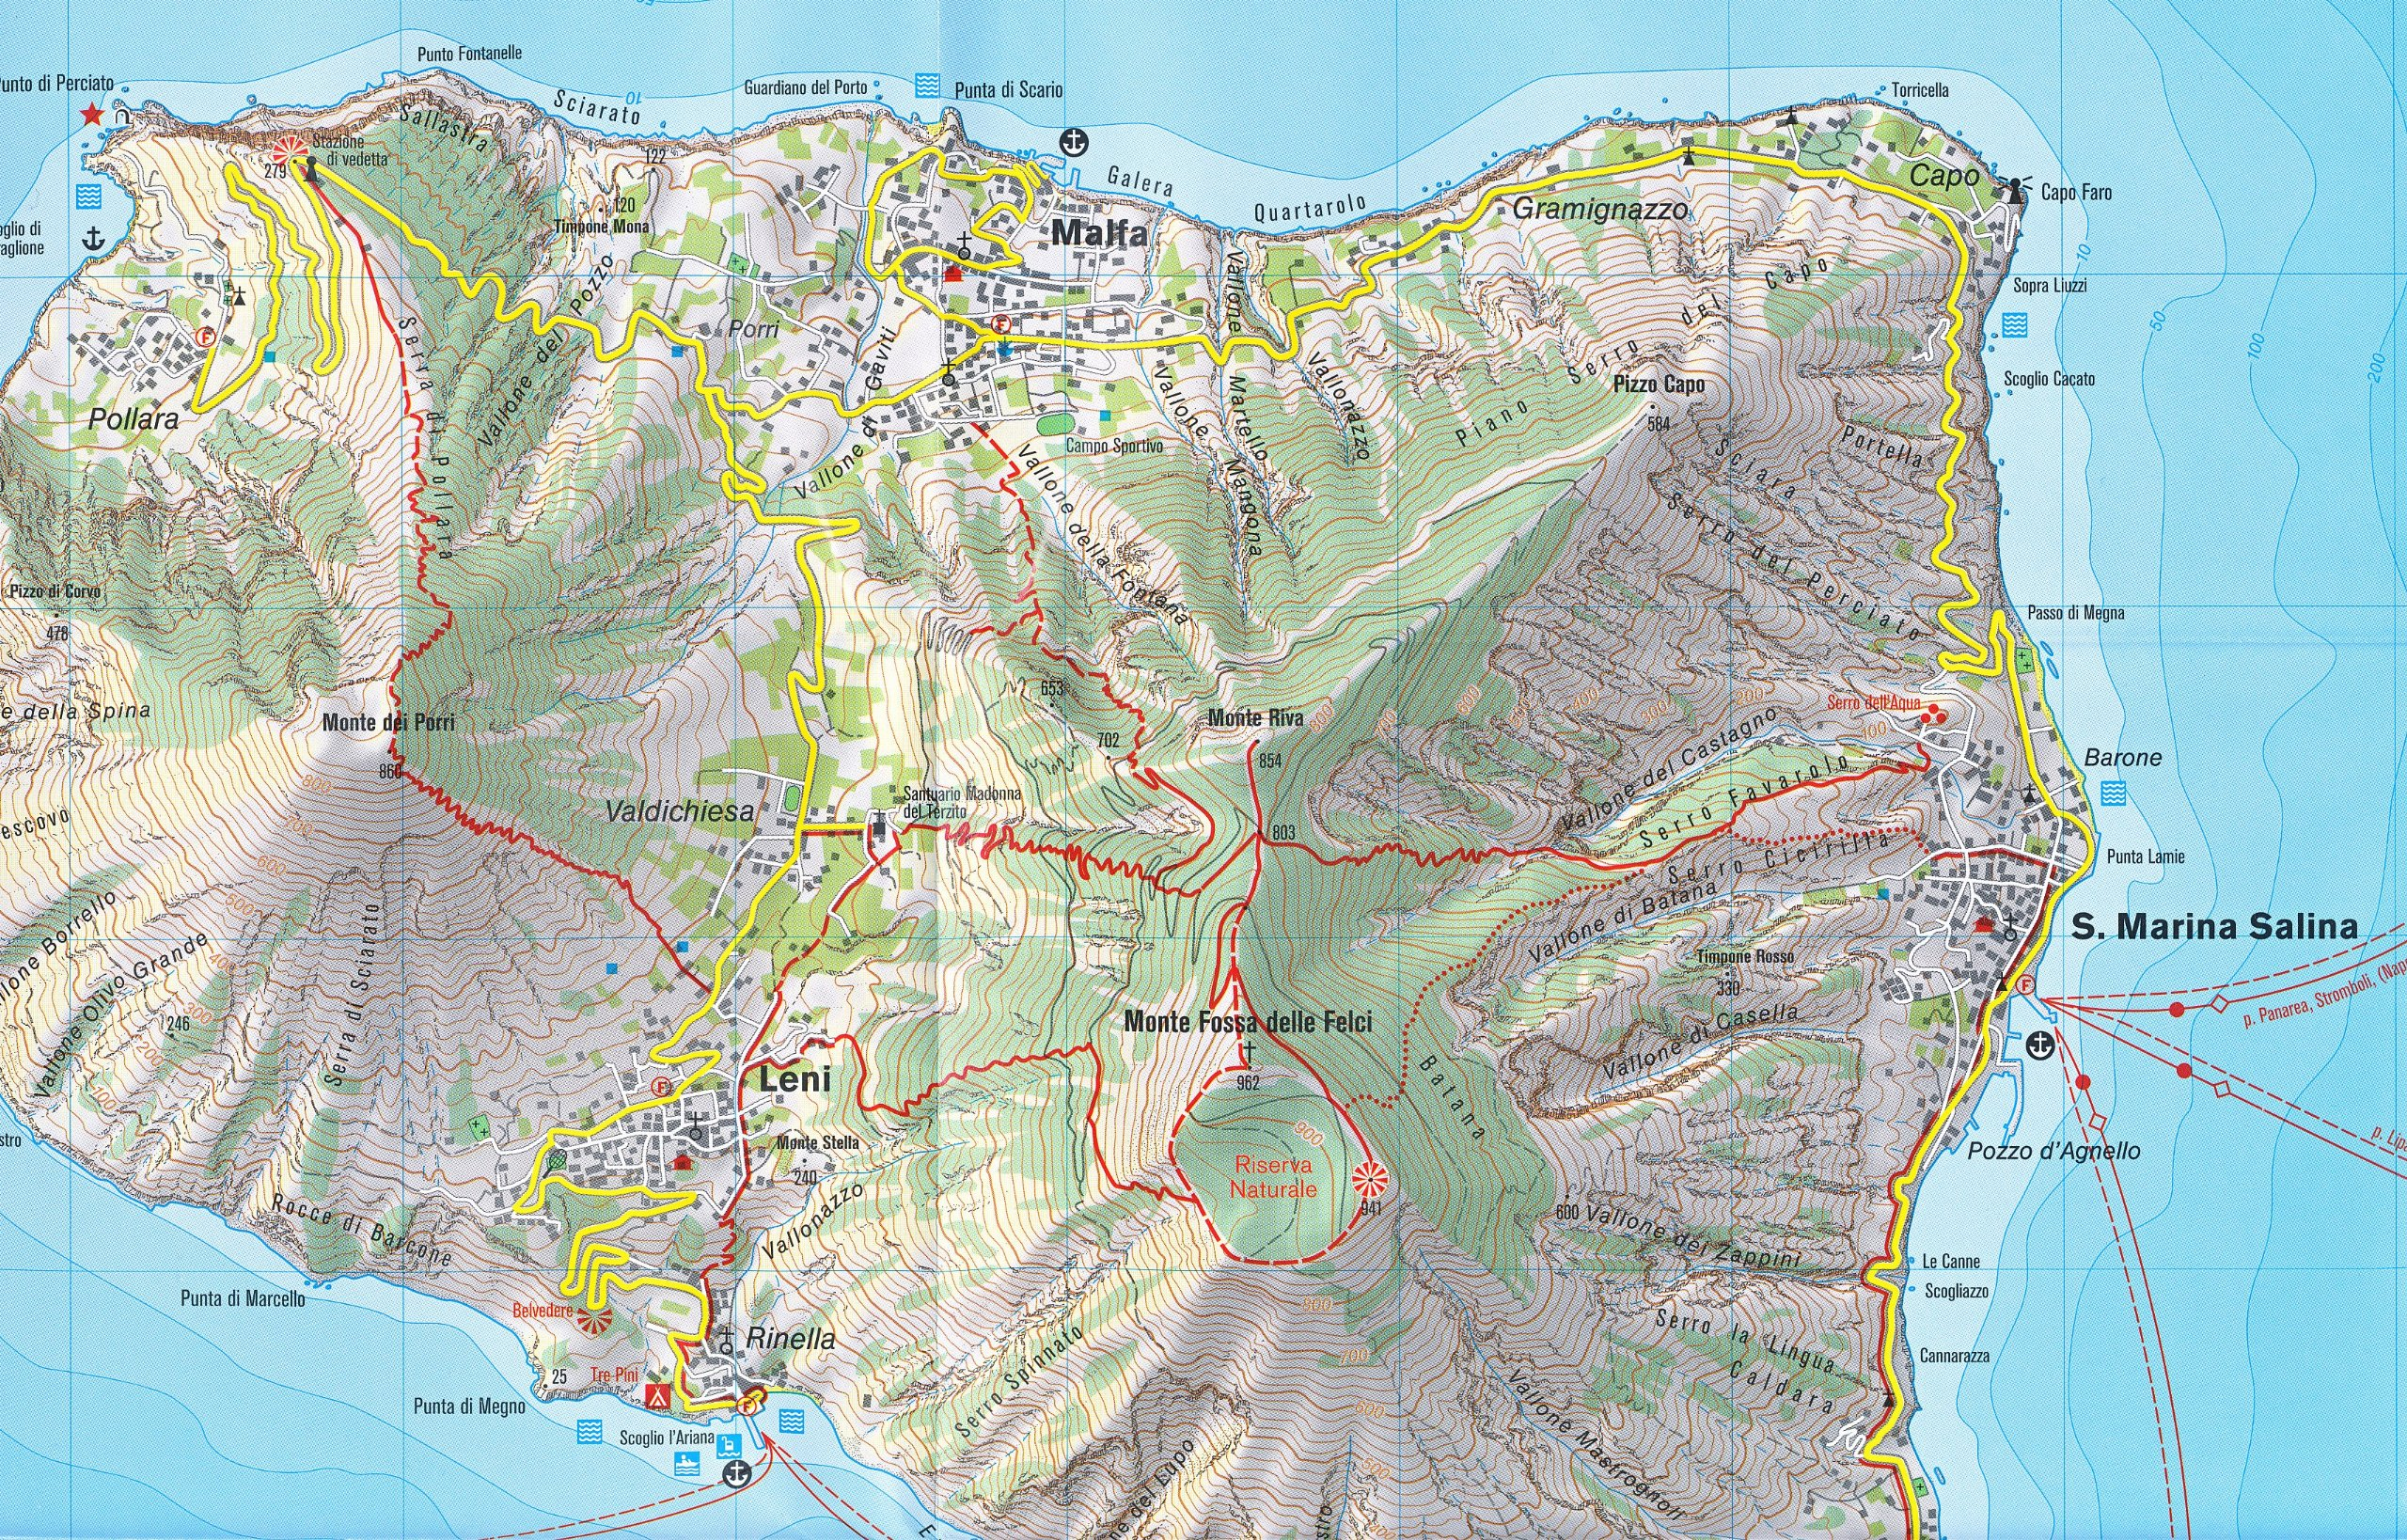 Aeolian Lipari Islands 125 000 Hiking Map GPScompatible